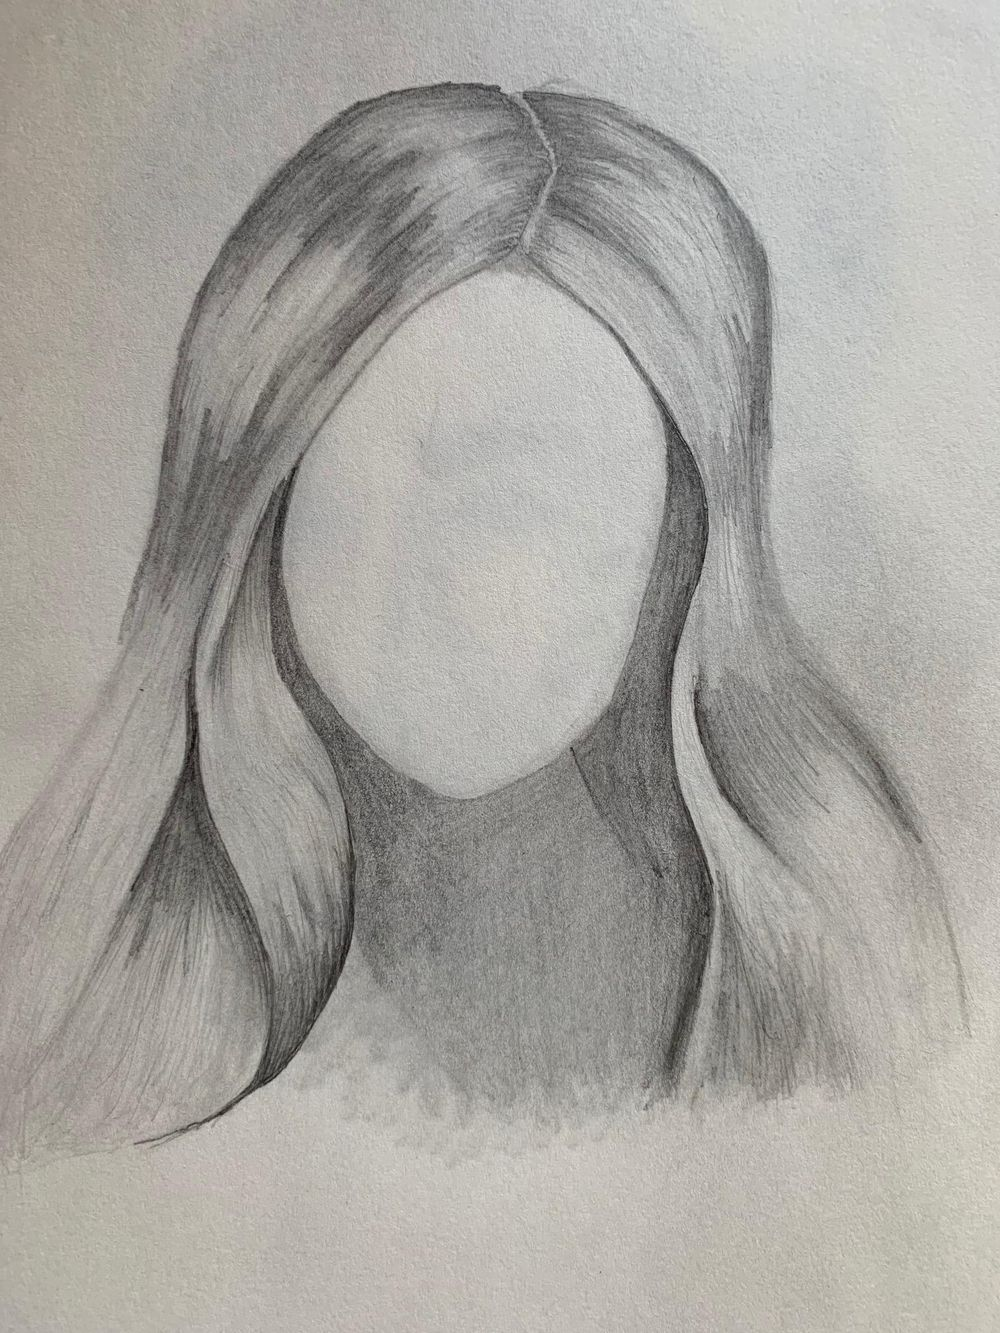 First Portrait! - image 6 - student project